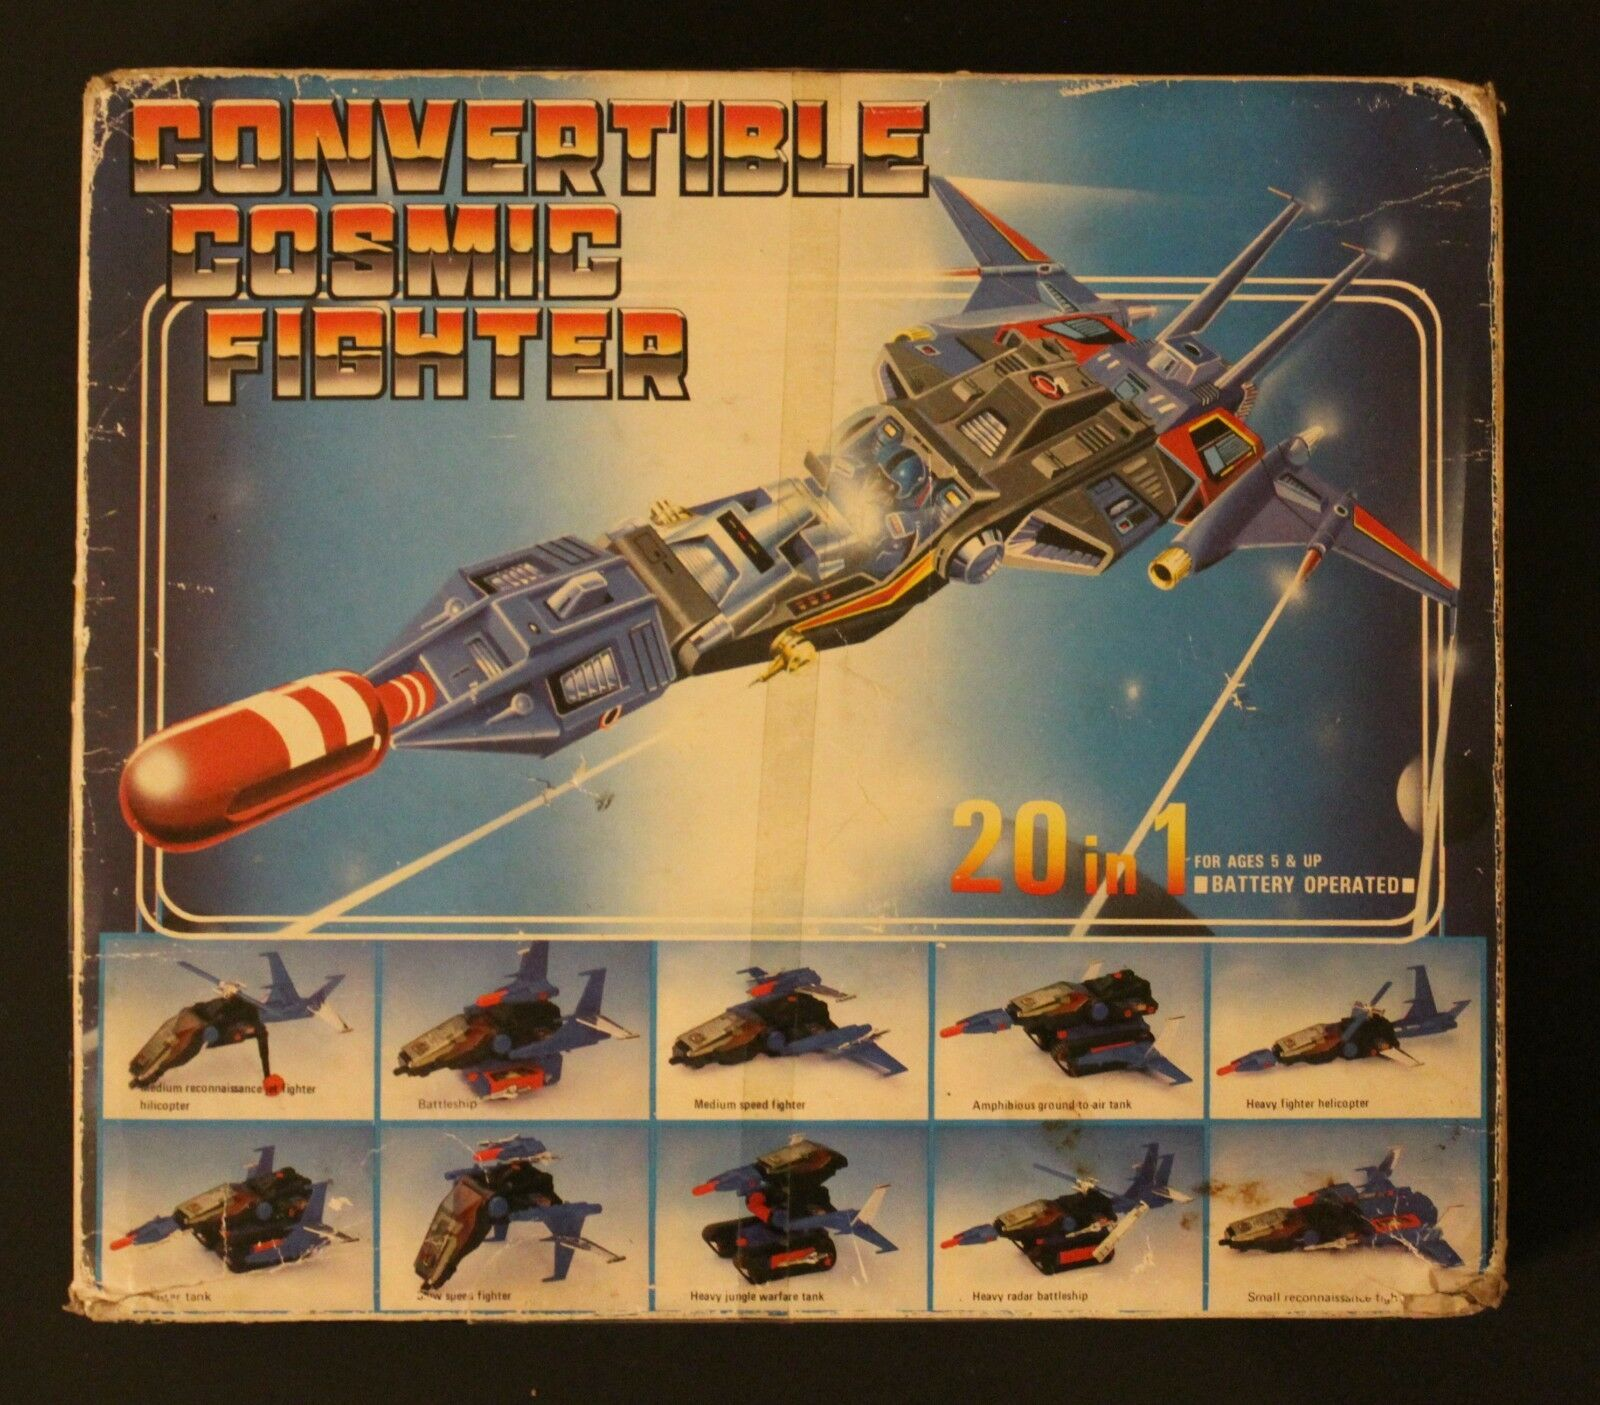 1984 Unbreed MICROuomo DELTARIAN FIGHTER  (CONverdeIBLE COSMIC FIGHTER) vehicle  salutare